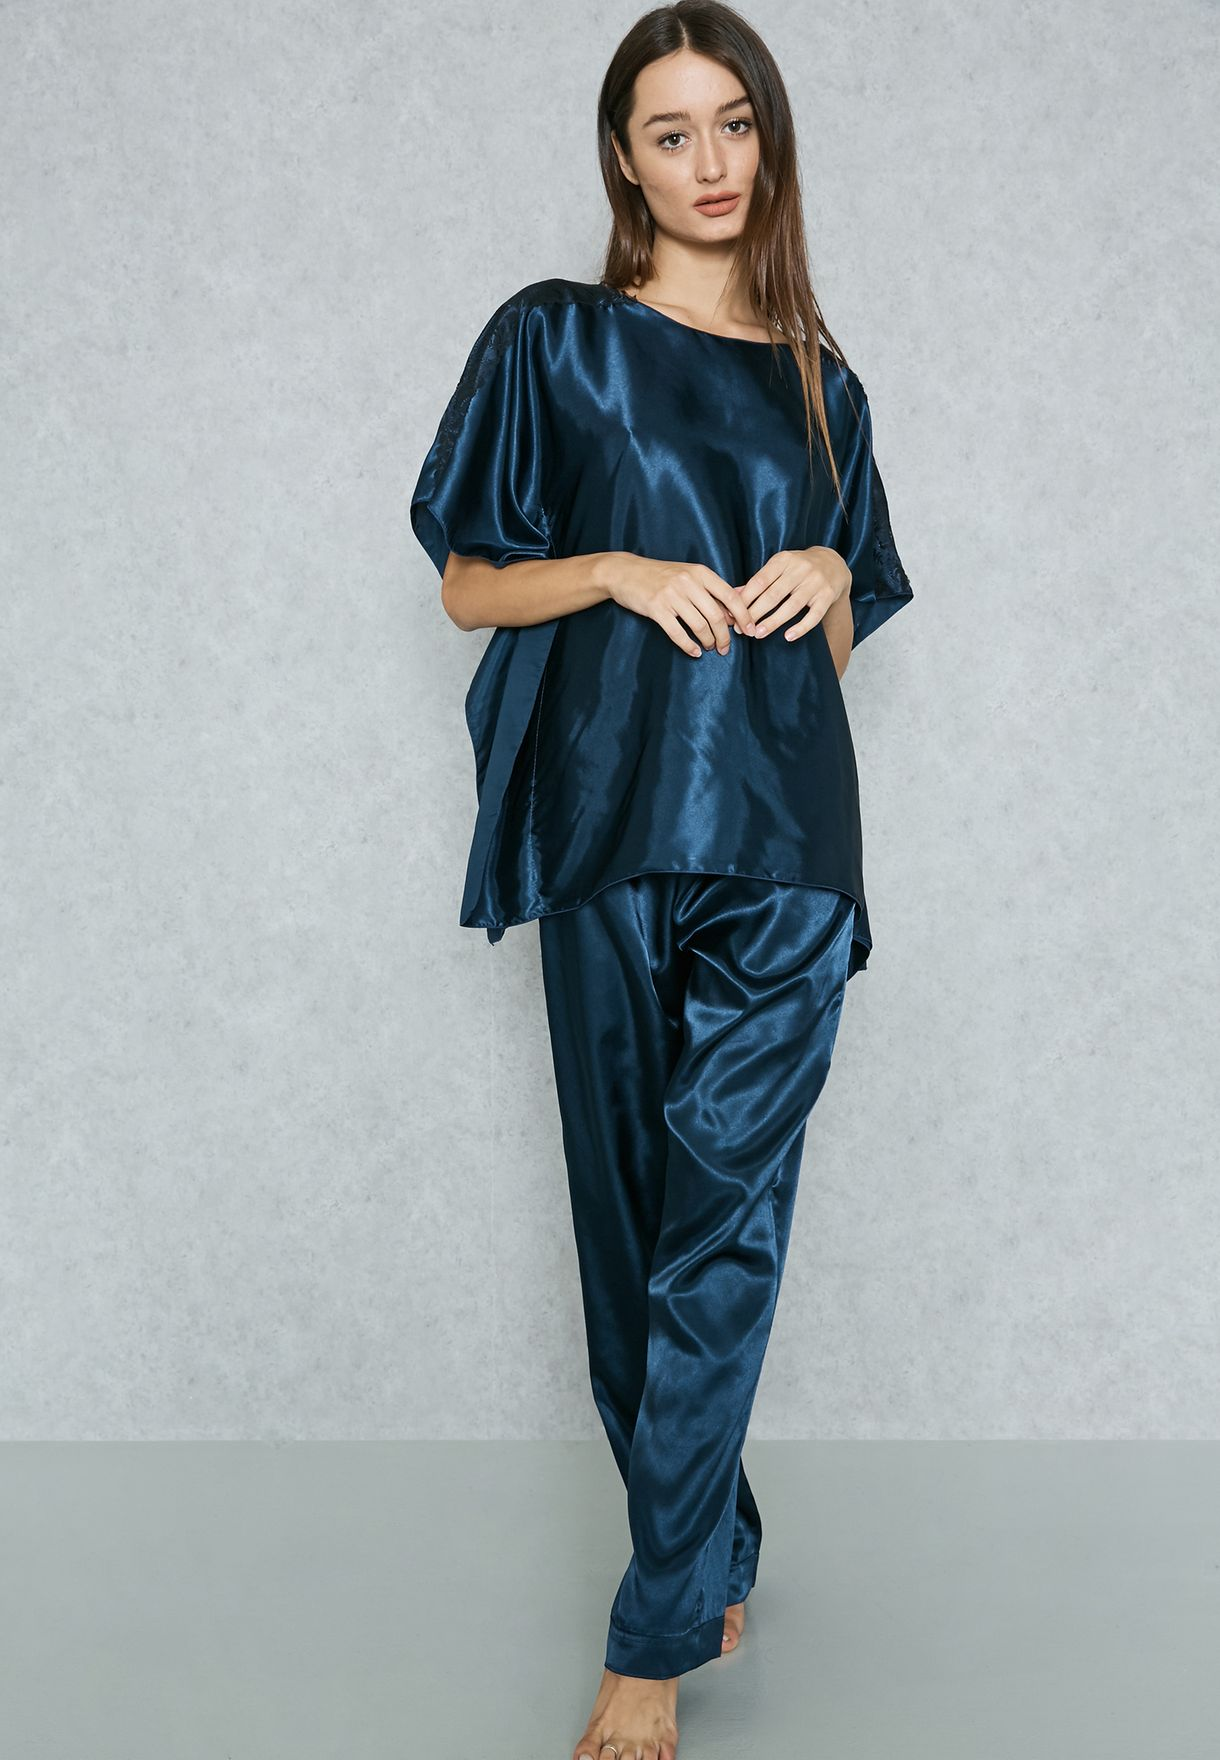 c08e24f112a Shop Brassi Belweiss navy Lace Sleeve Detail Satin Pyjama Set 2329 ...